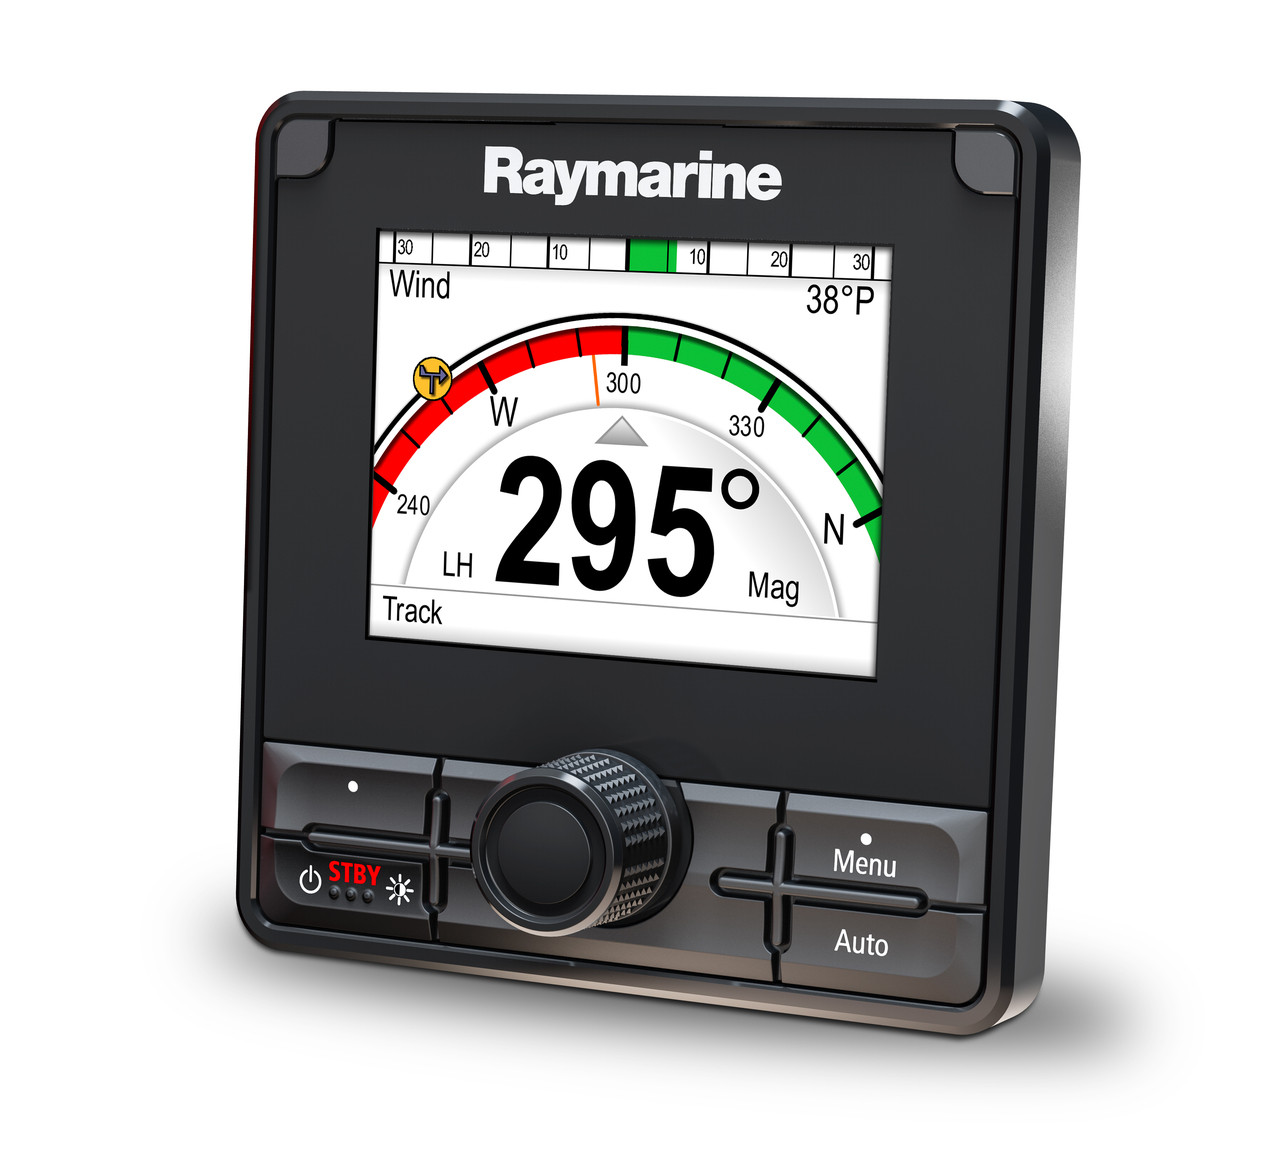 Raymarine p70Rs Autopilot Control Head Left View